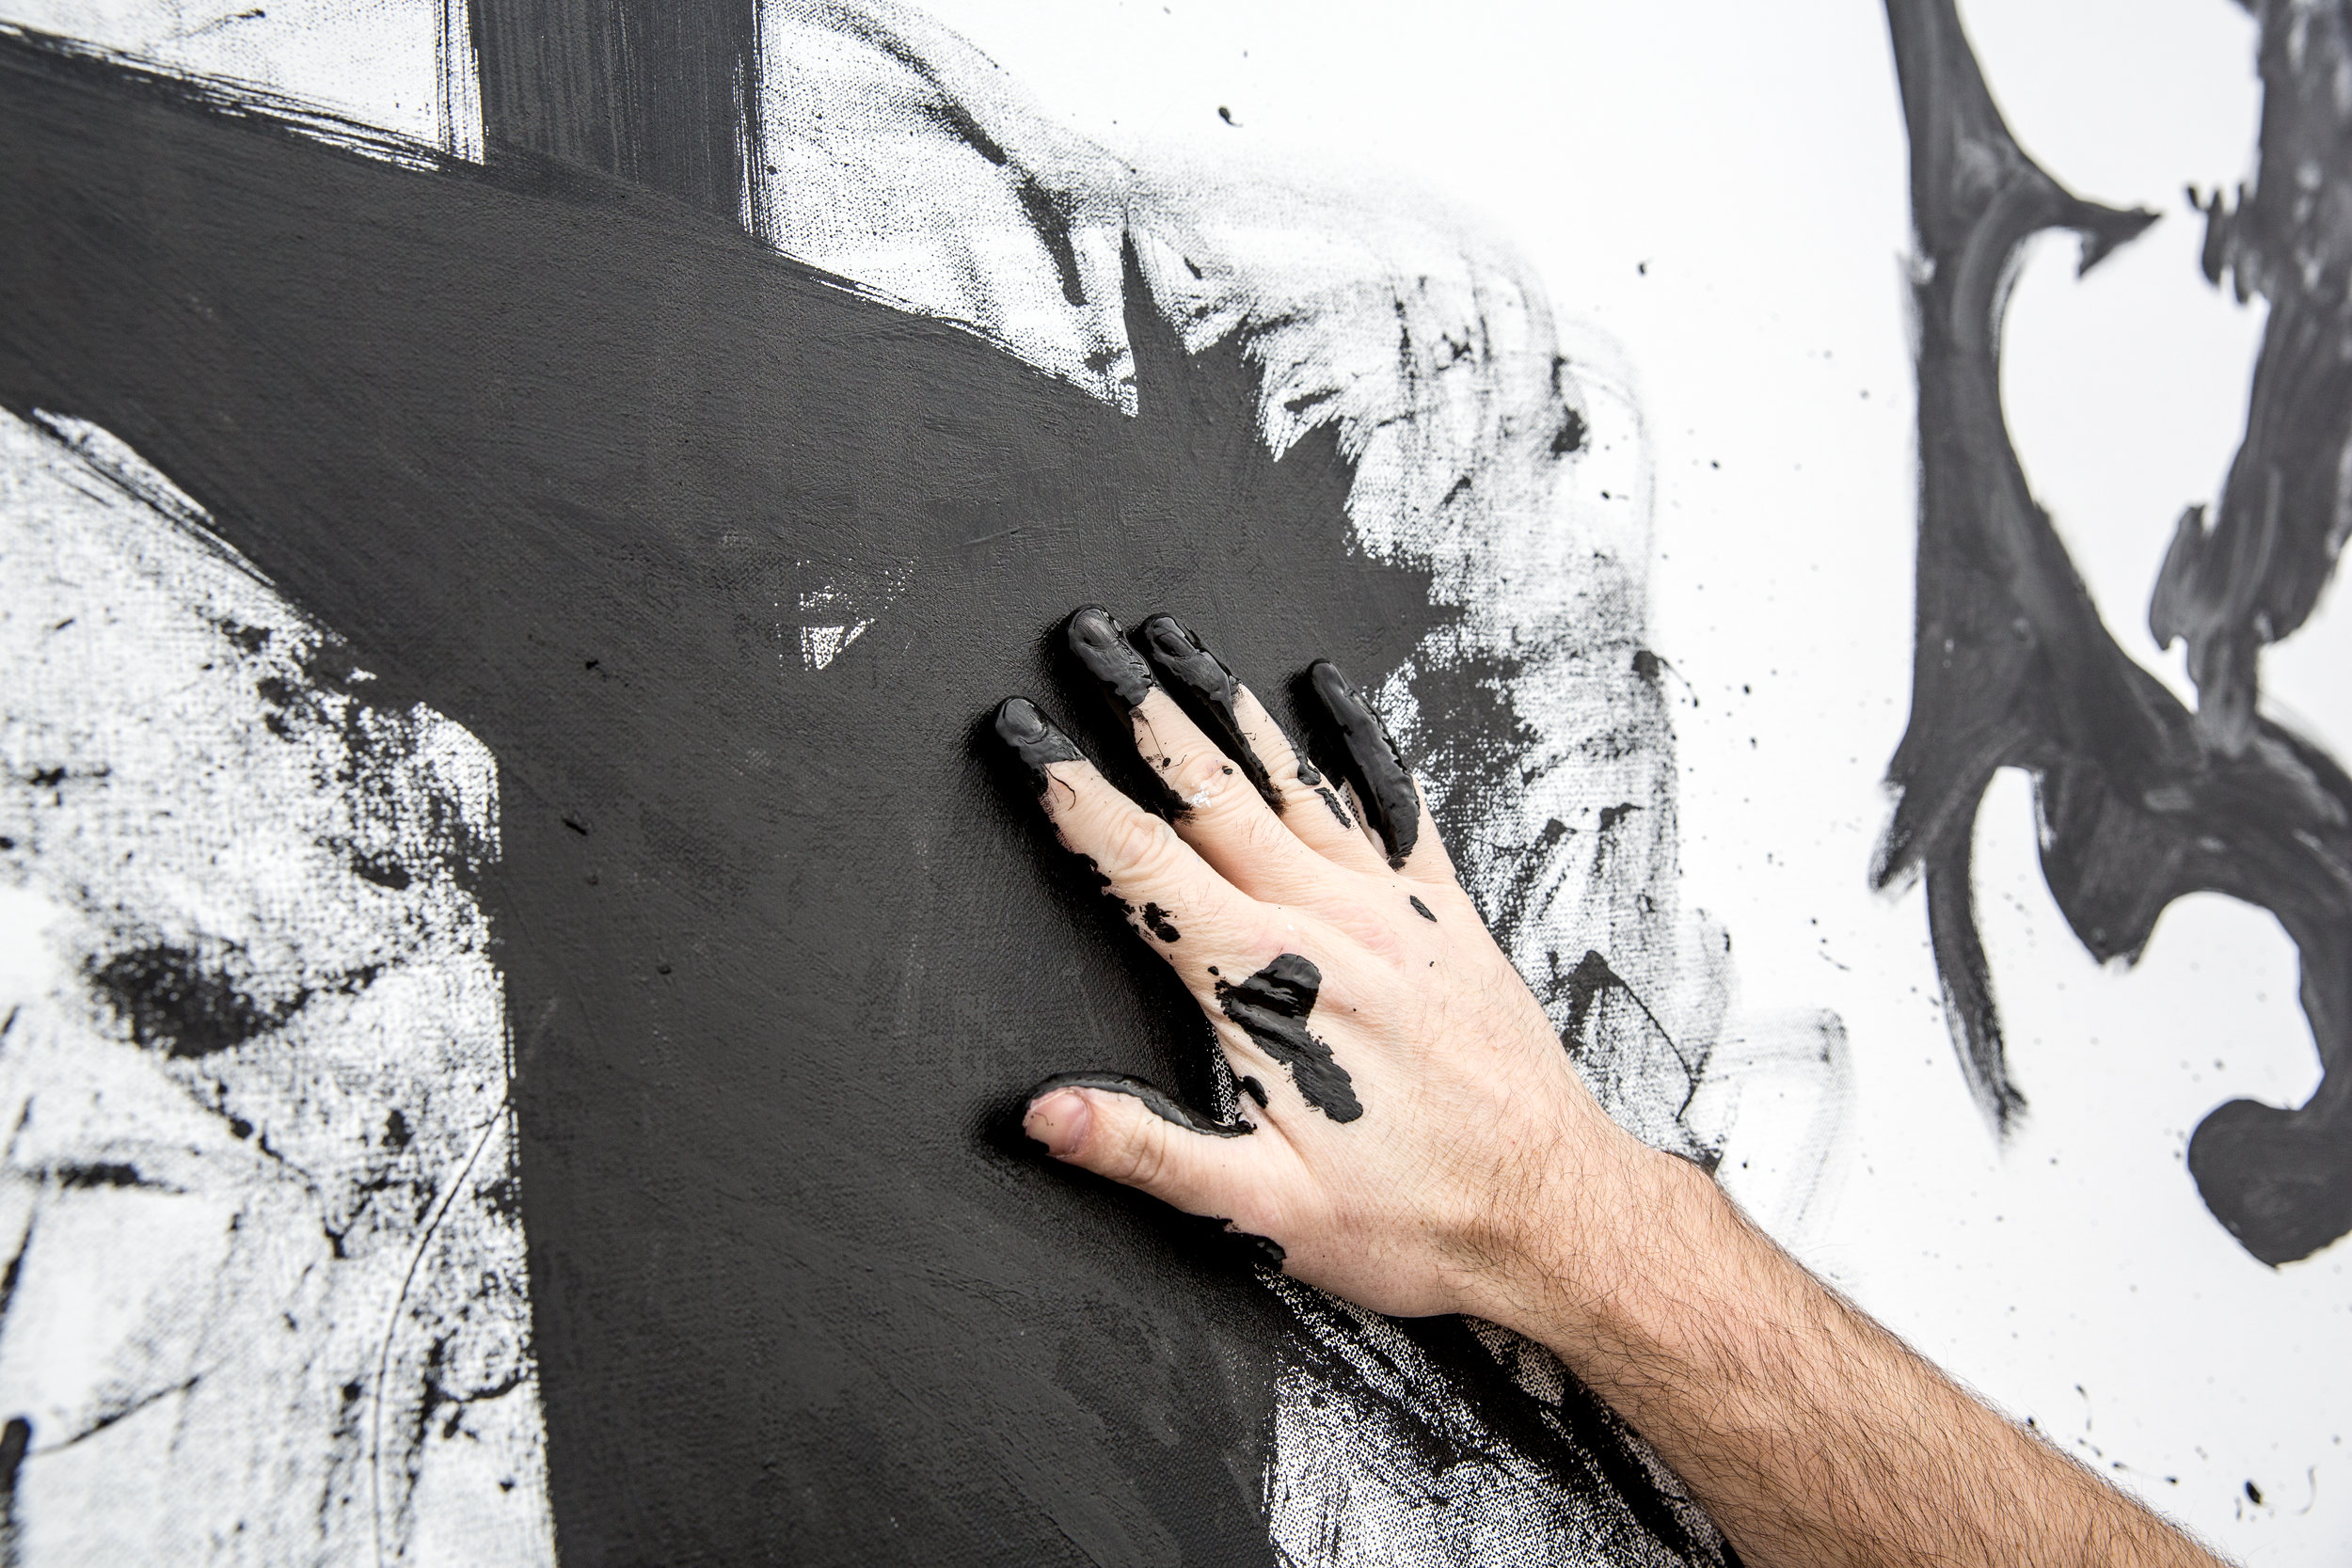 Speed Painting with hands